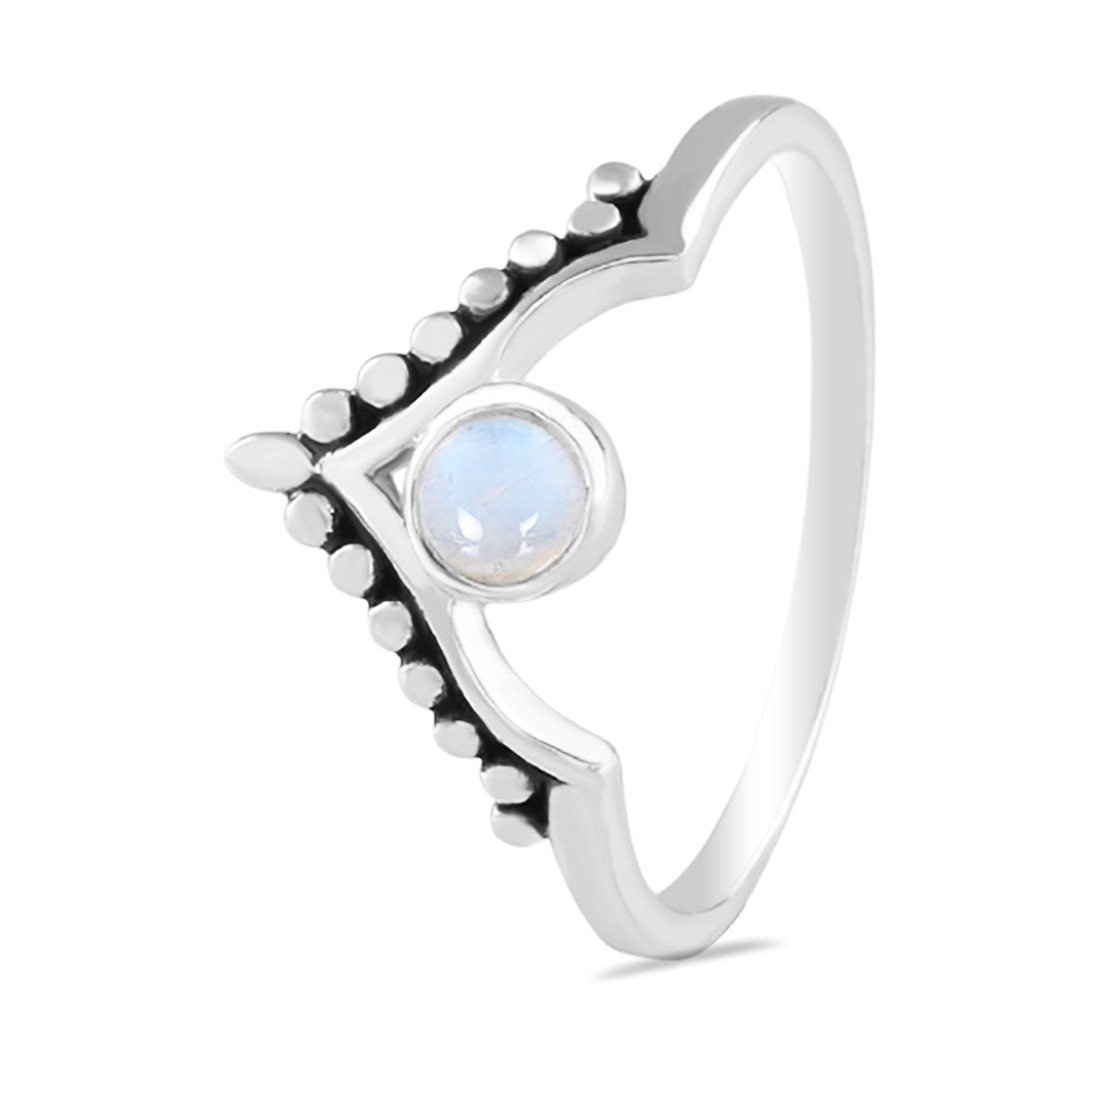 Moonstone Ring-Crowned Moon Moonstone Ring 925 SILVER & MOONSTONE